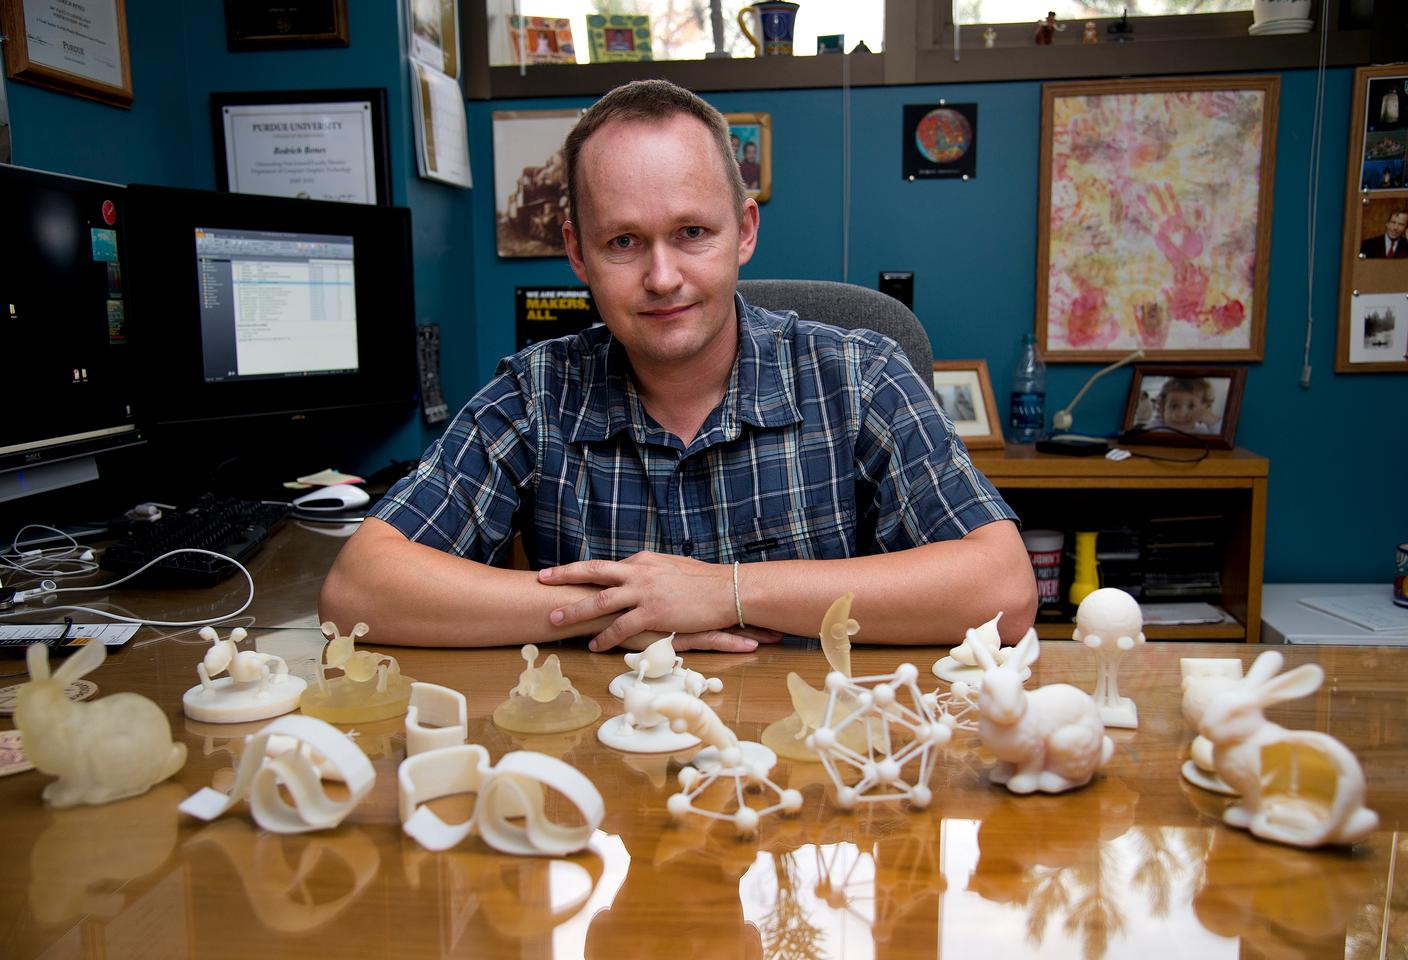 Purdue associate professor of computer graphics Bedrich Benes, with an assortment of objects made with and without the software